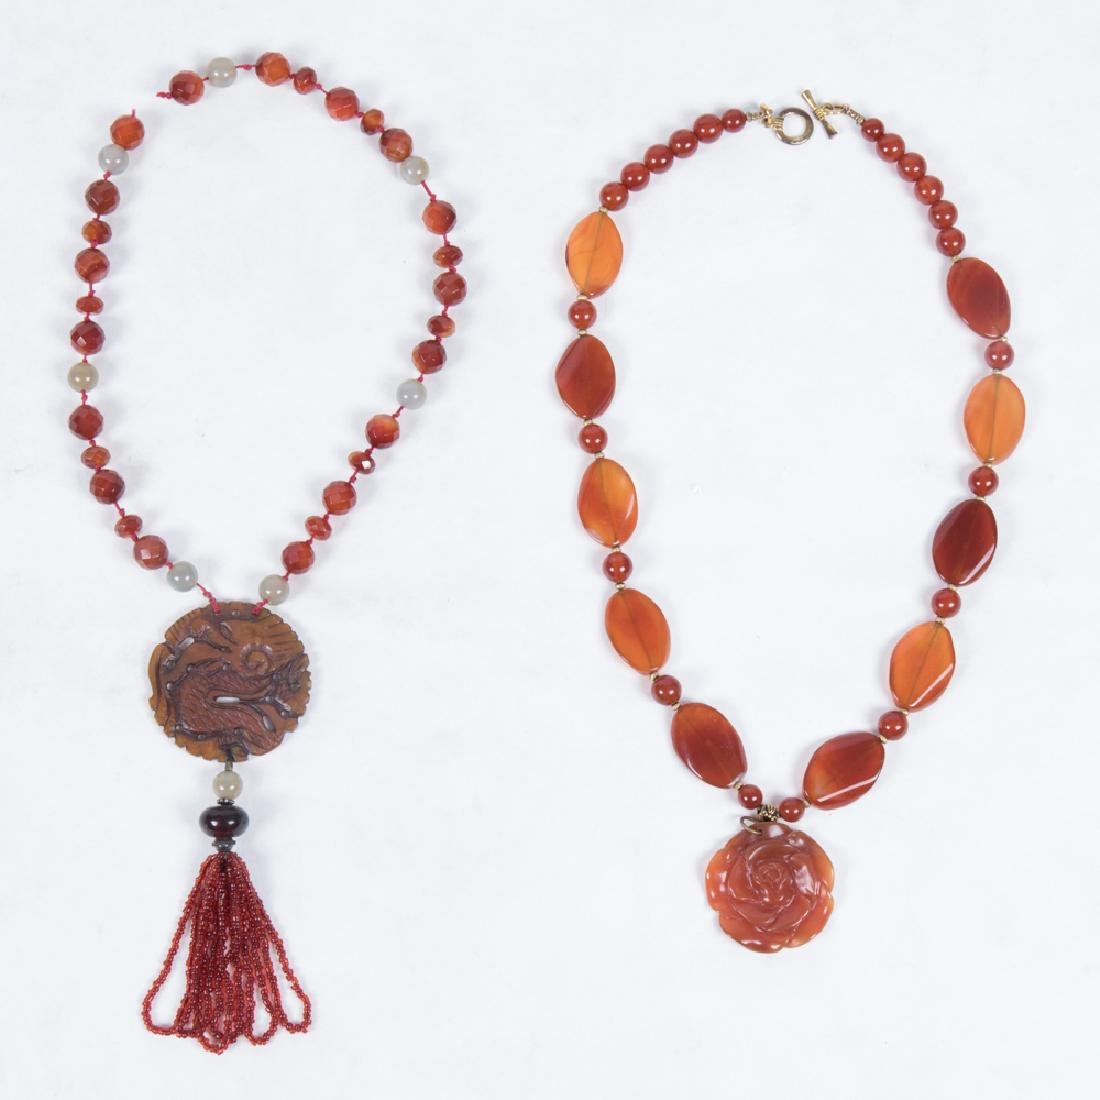 Two Colored Hardstone, Glass and Jade Beaded Necklaces.